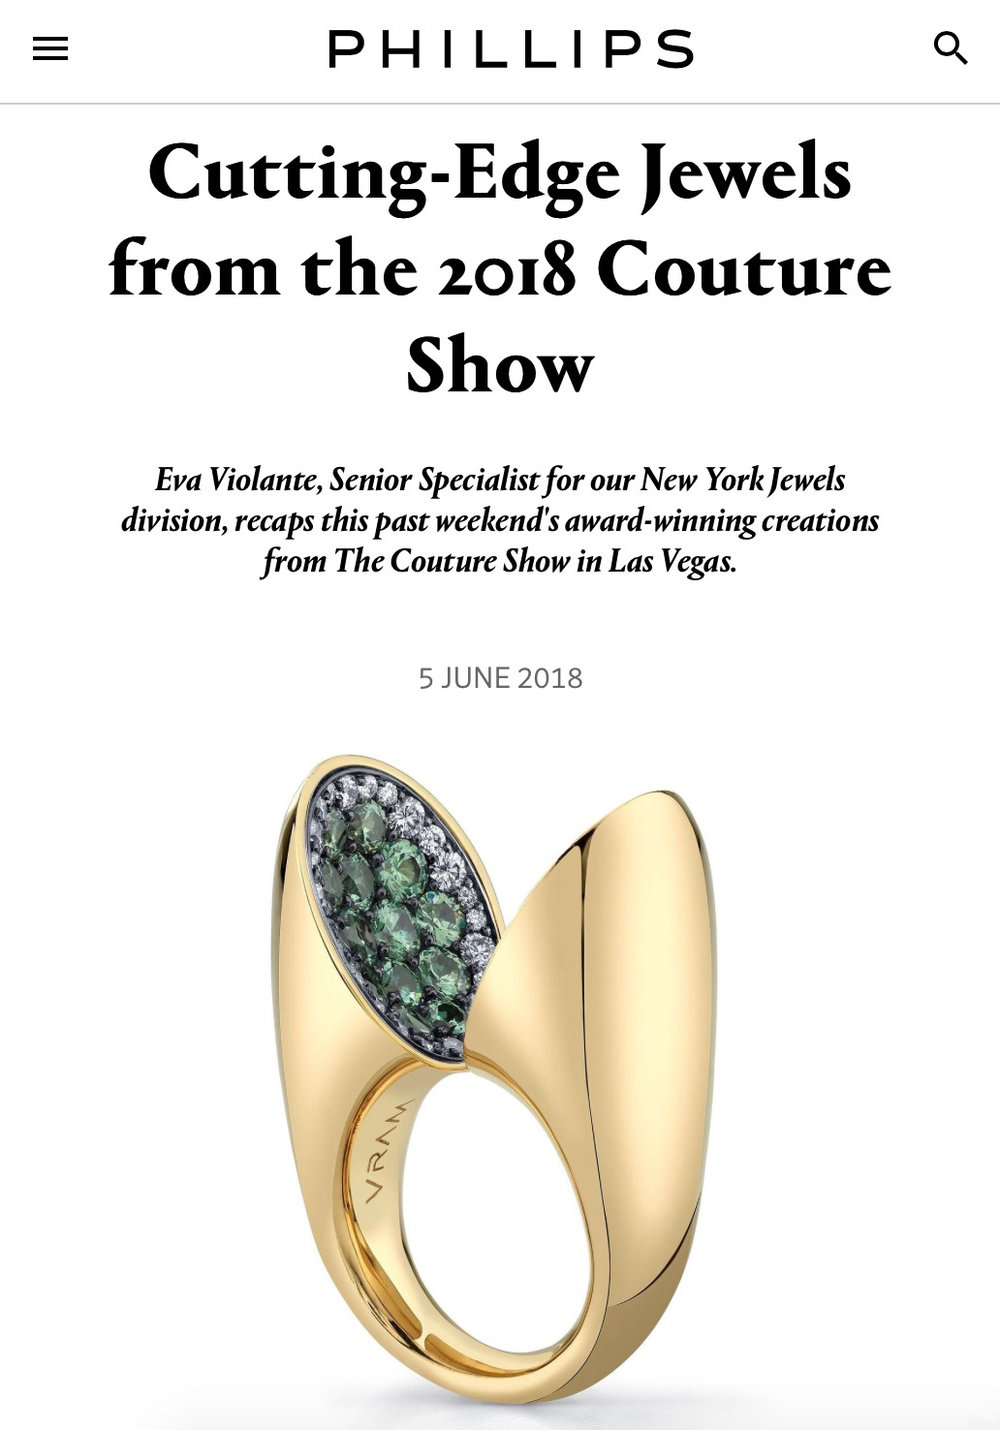 VRAM Jewelry Phillips Couture Award 2018 Cutting Edge